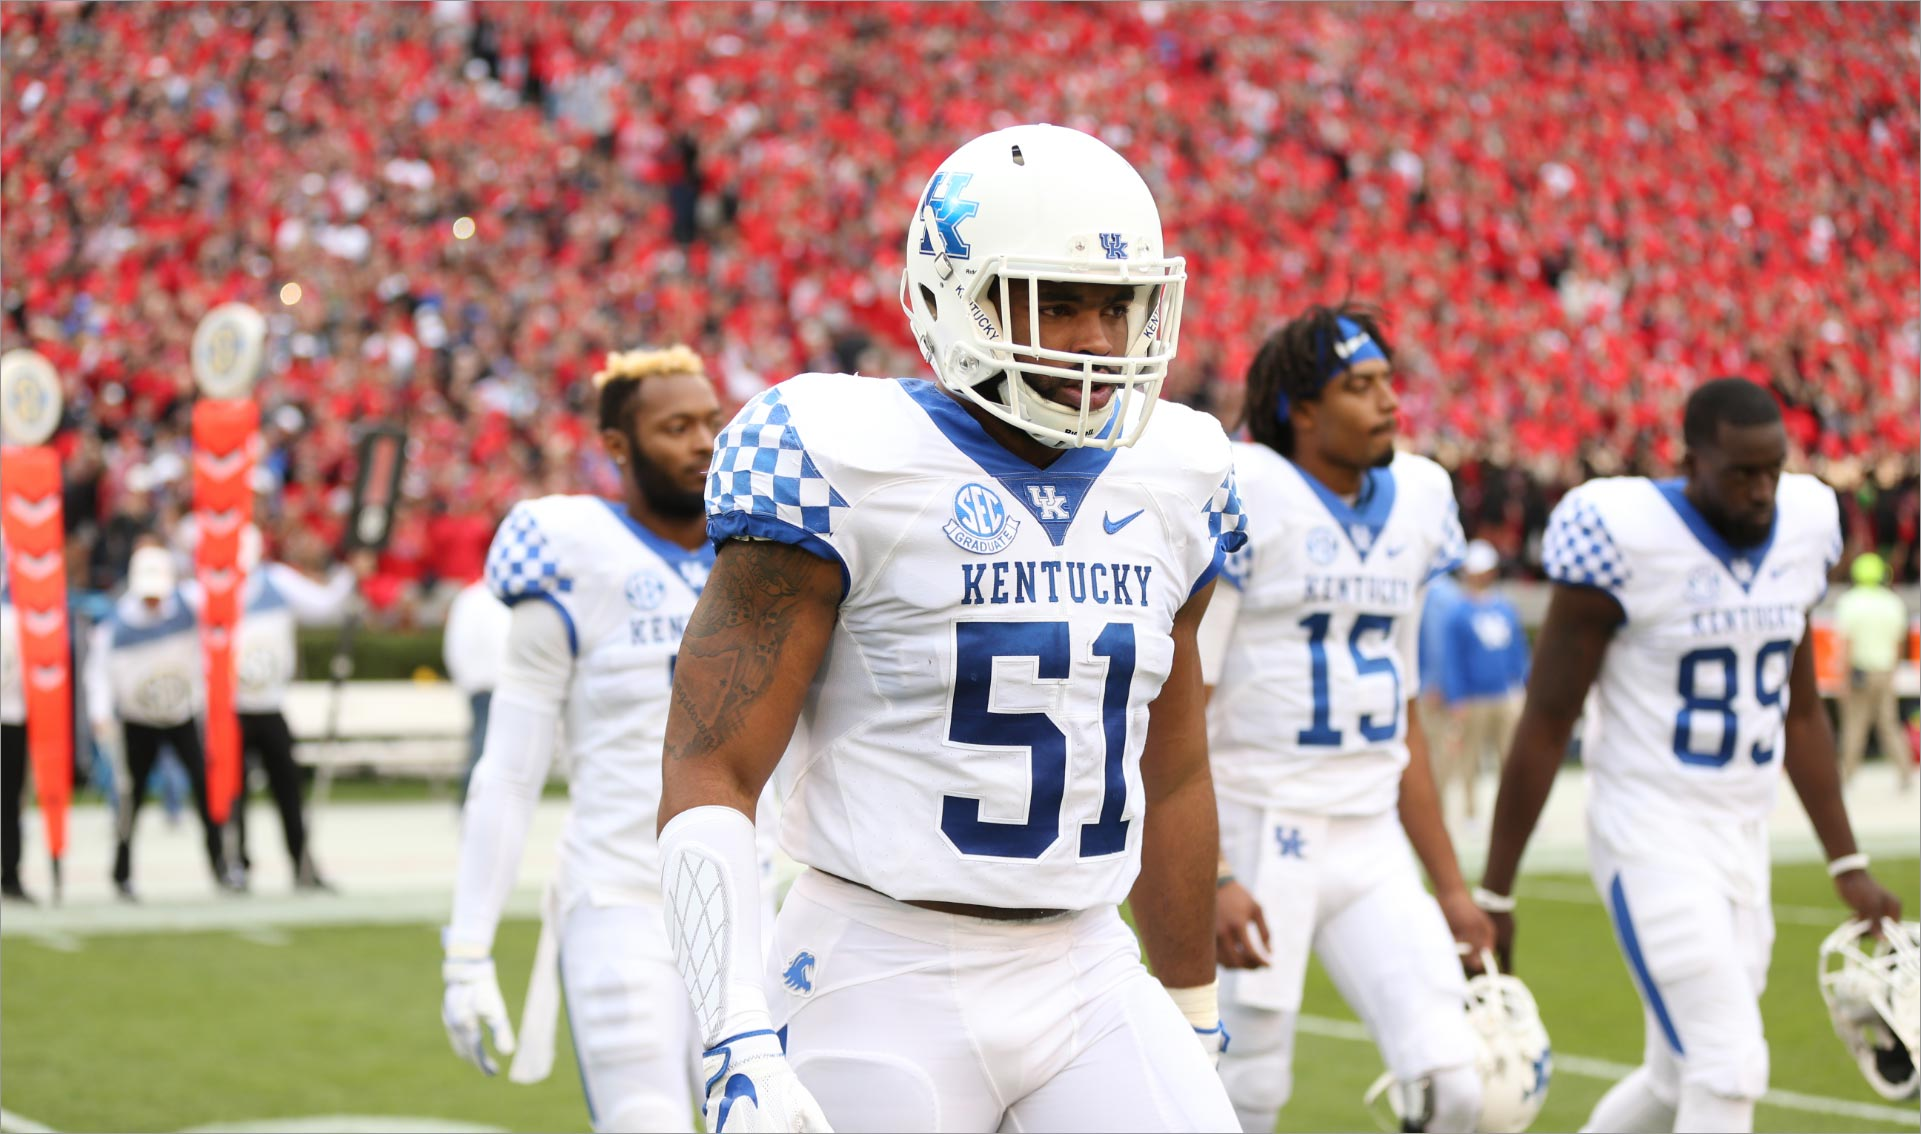 In another photo from his college football days, Courtney walks onto the field with his team. He is wearing a helmet and a white Kentucky jersey with #51 on it.